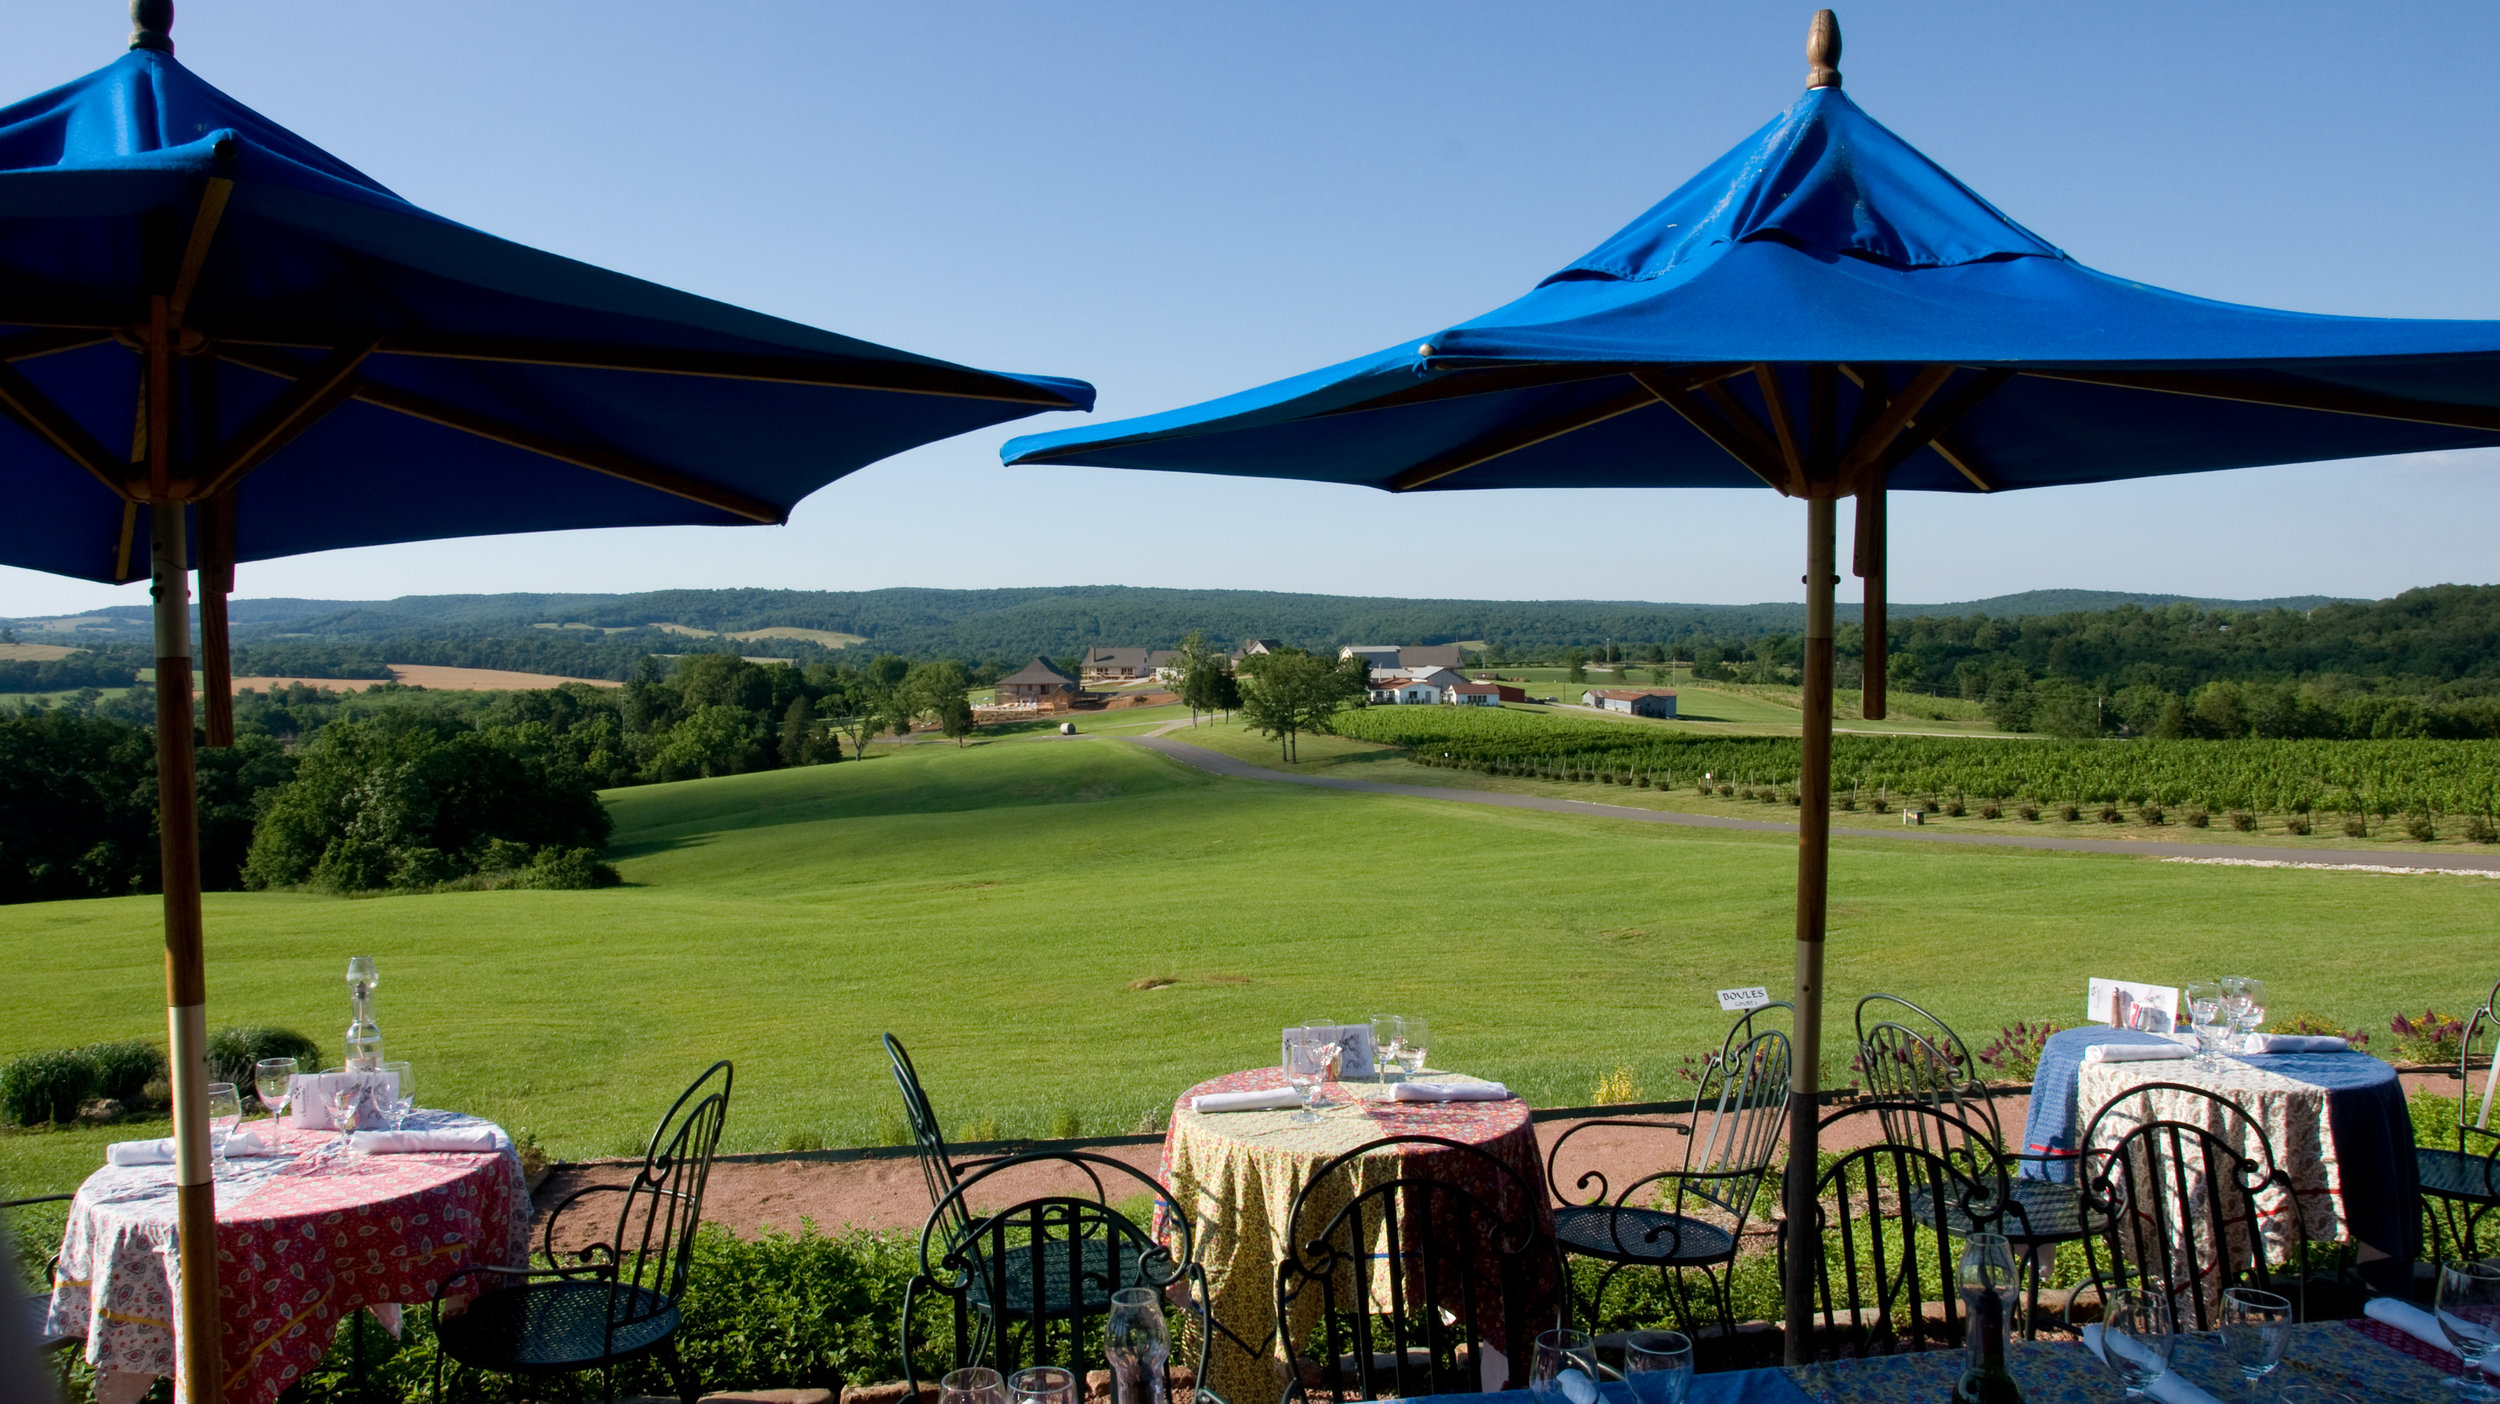 Panoramic views of rolling hills surround the outdoor seating area at Chaumette Winery.